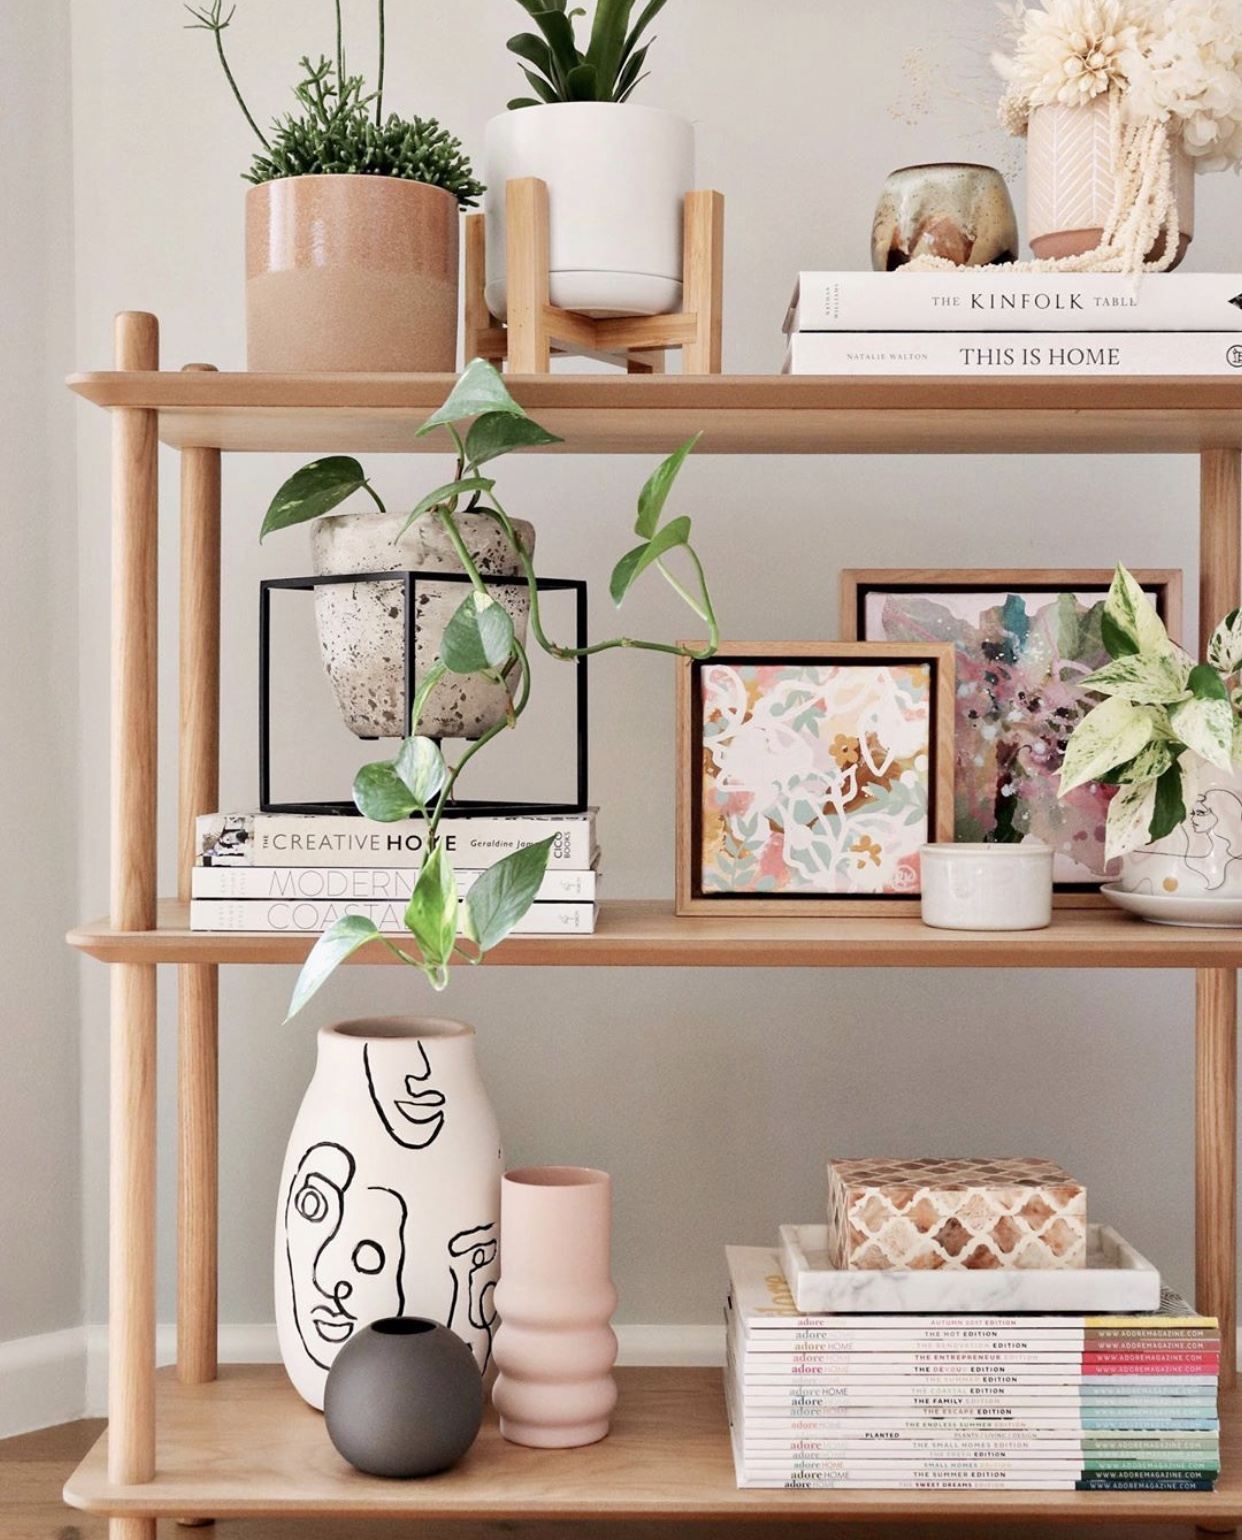 Bookshelf styling use art to style your home